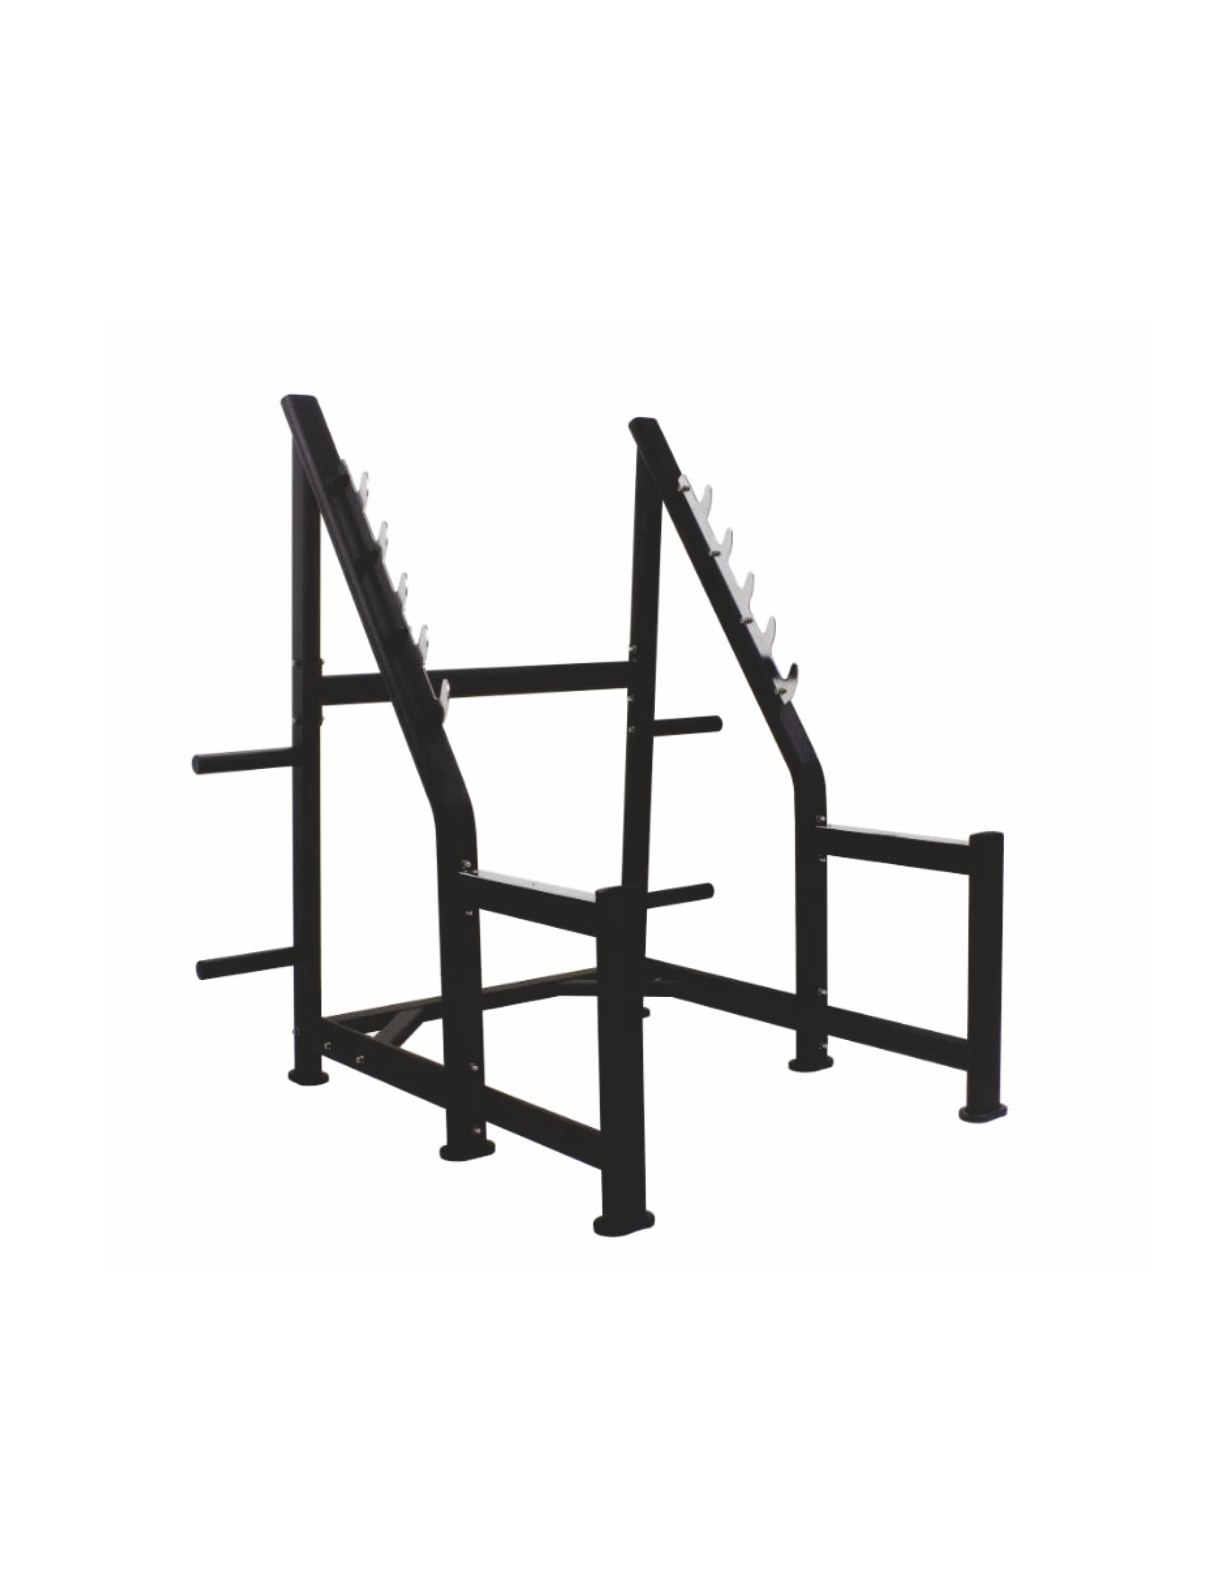 WT3058 SQUAT RACK